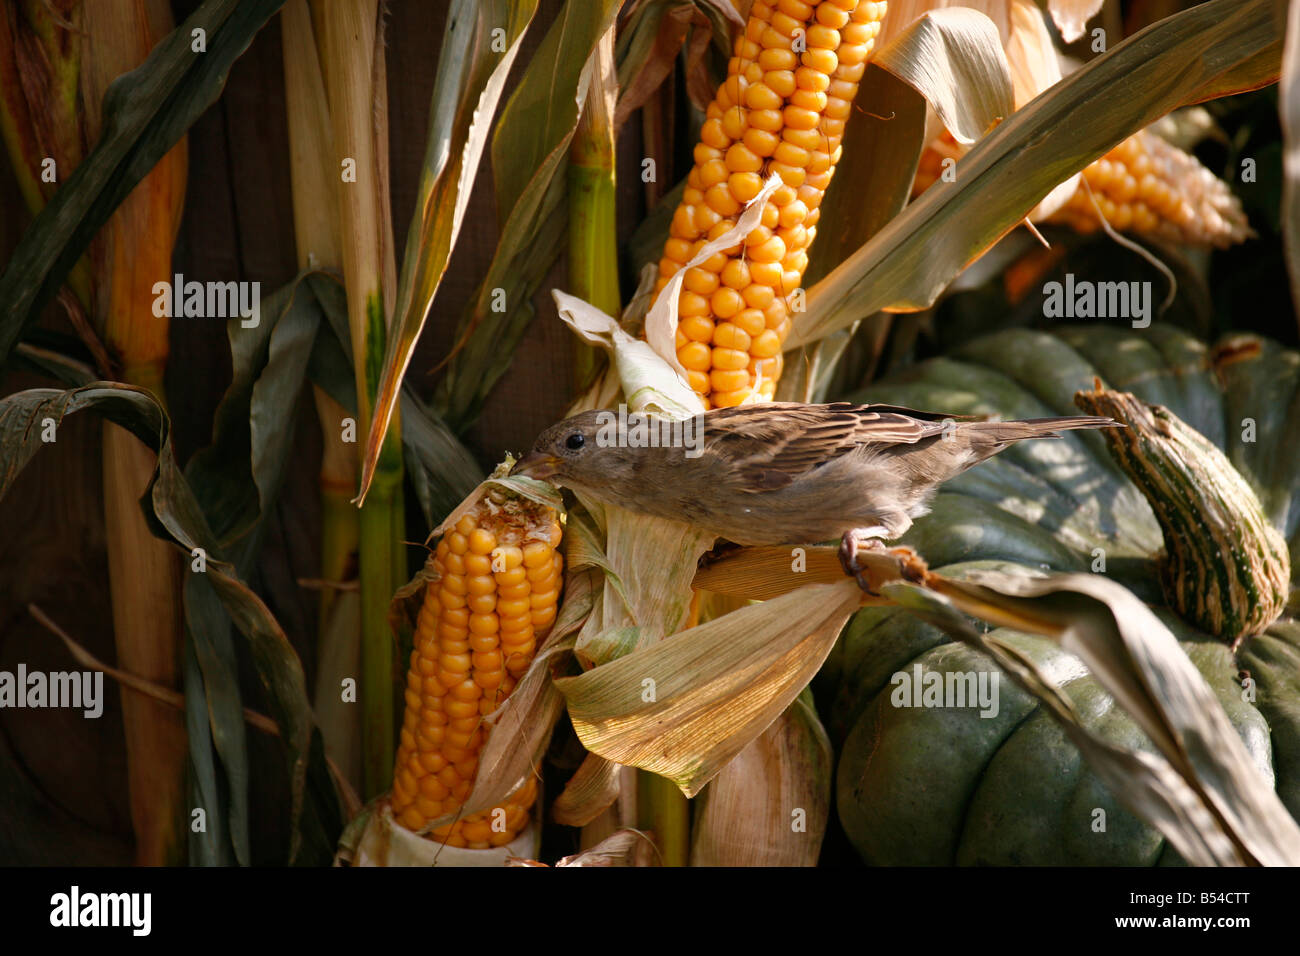 House Sparrow (Passer domesticus) female feeding on corncob in a harvest festival decoration - Stock Image